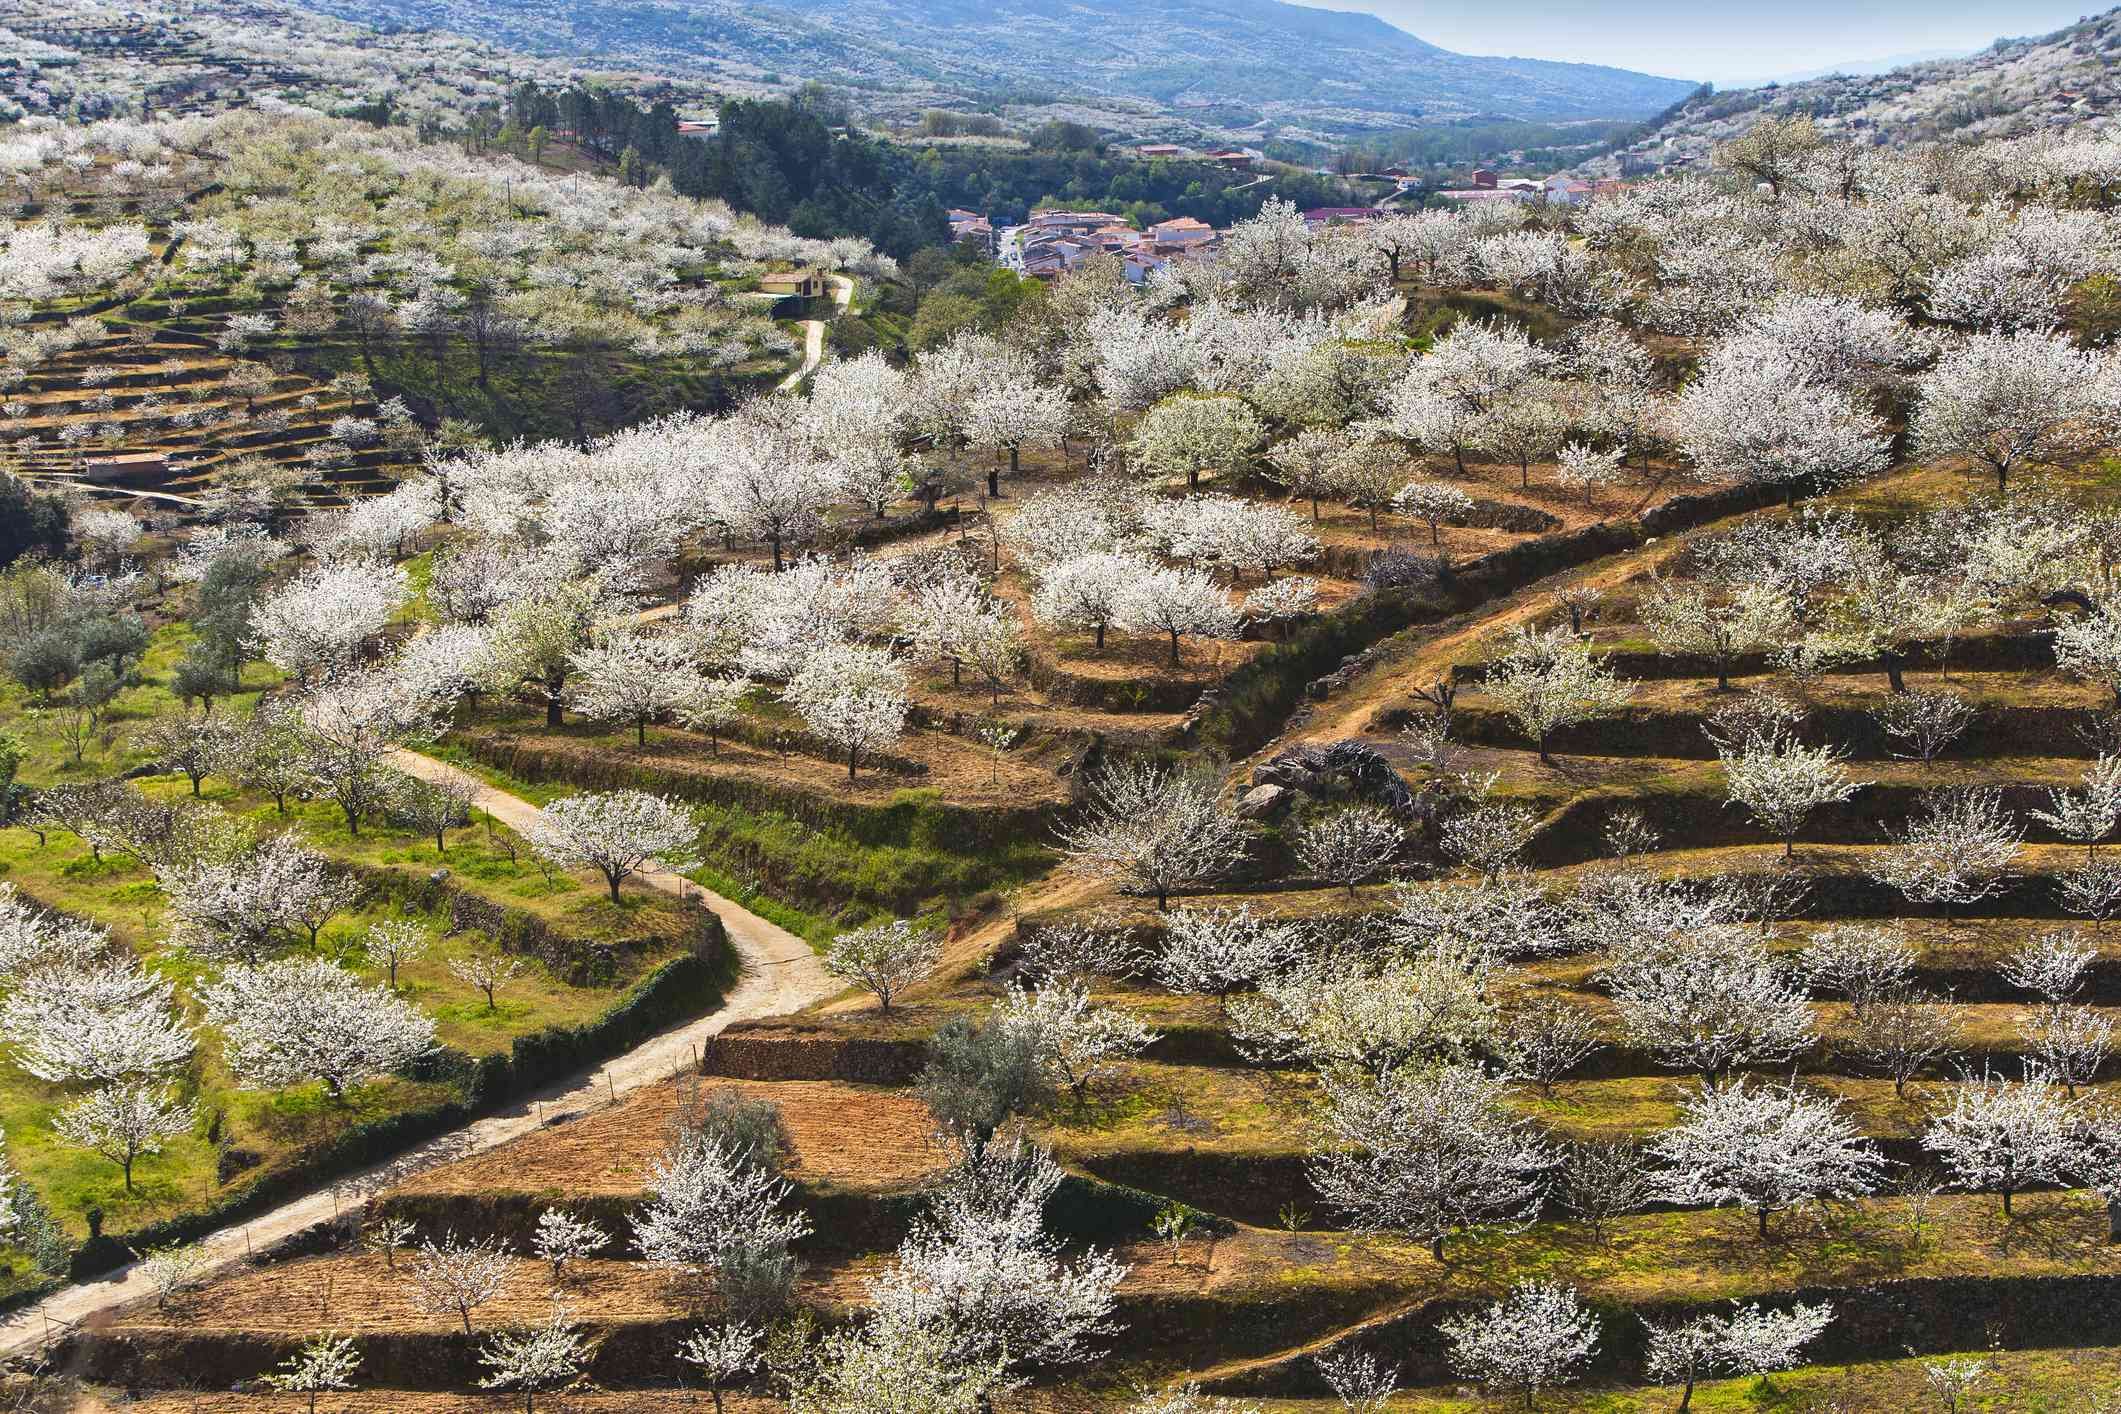 White cherry blossom trees blooming in a terraced garden carved into the mountains in Jerte Valley